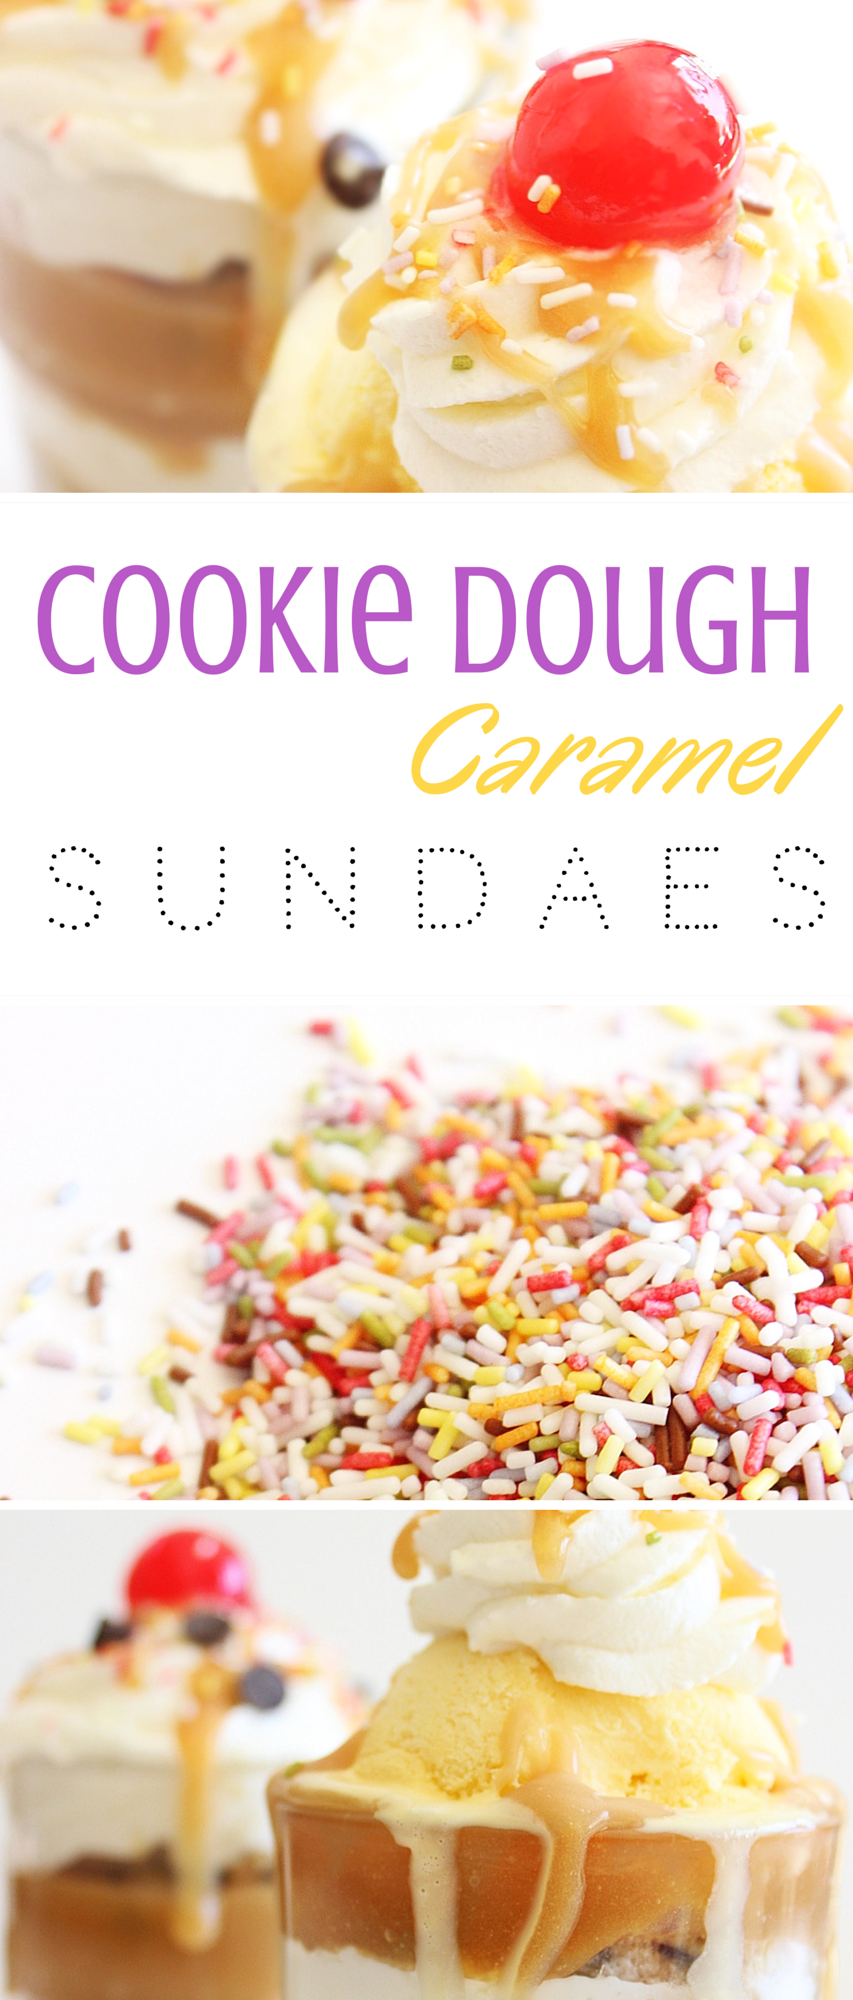 Cookie Doughb Recipes